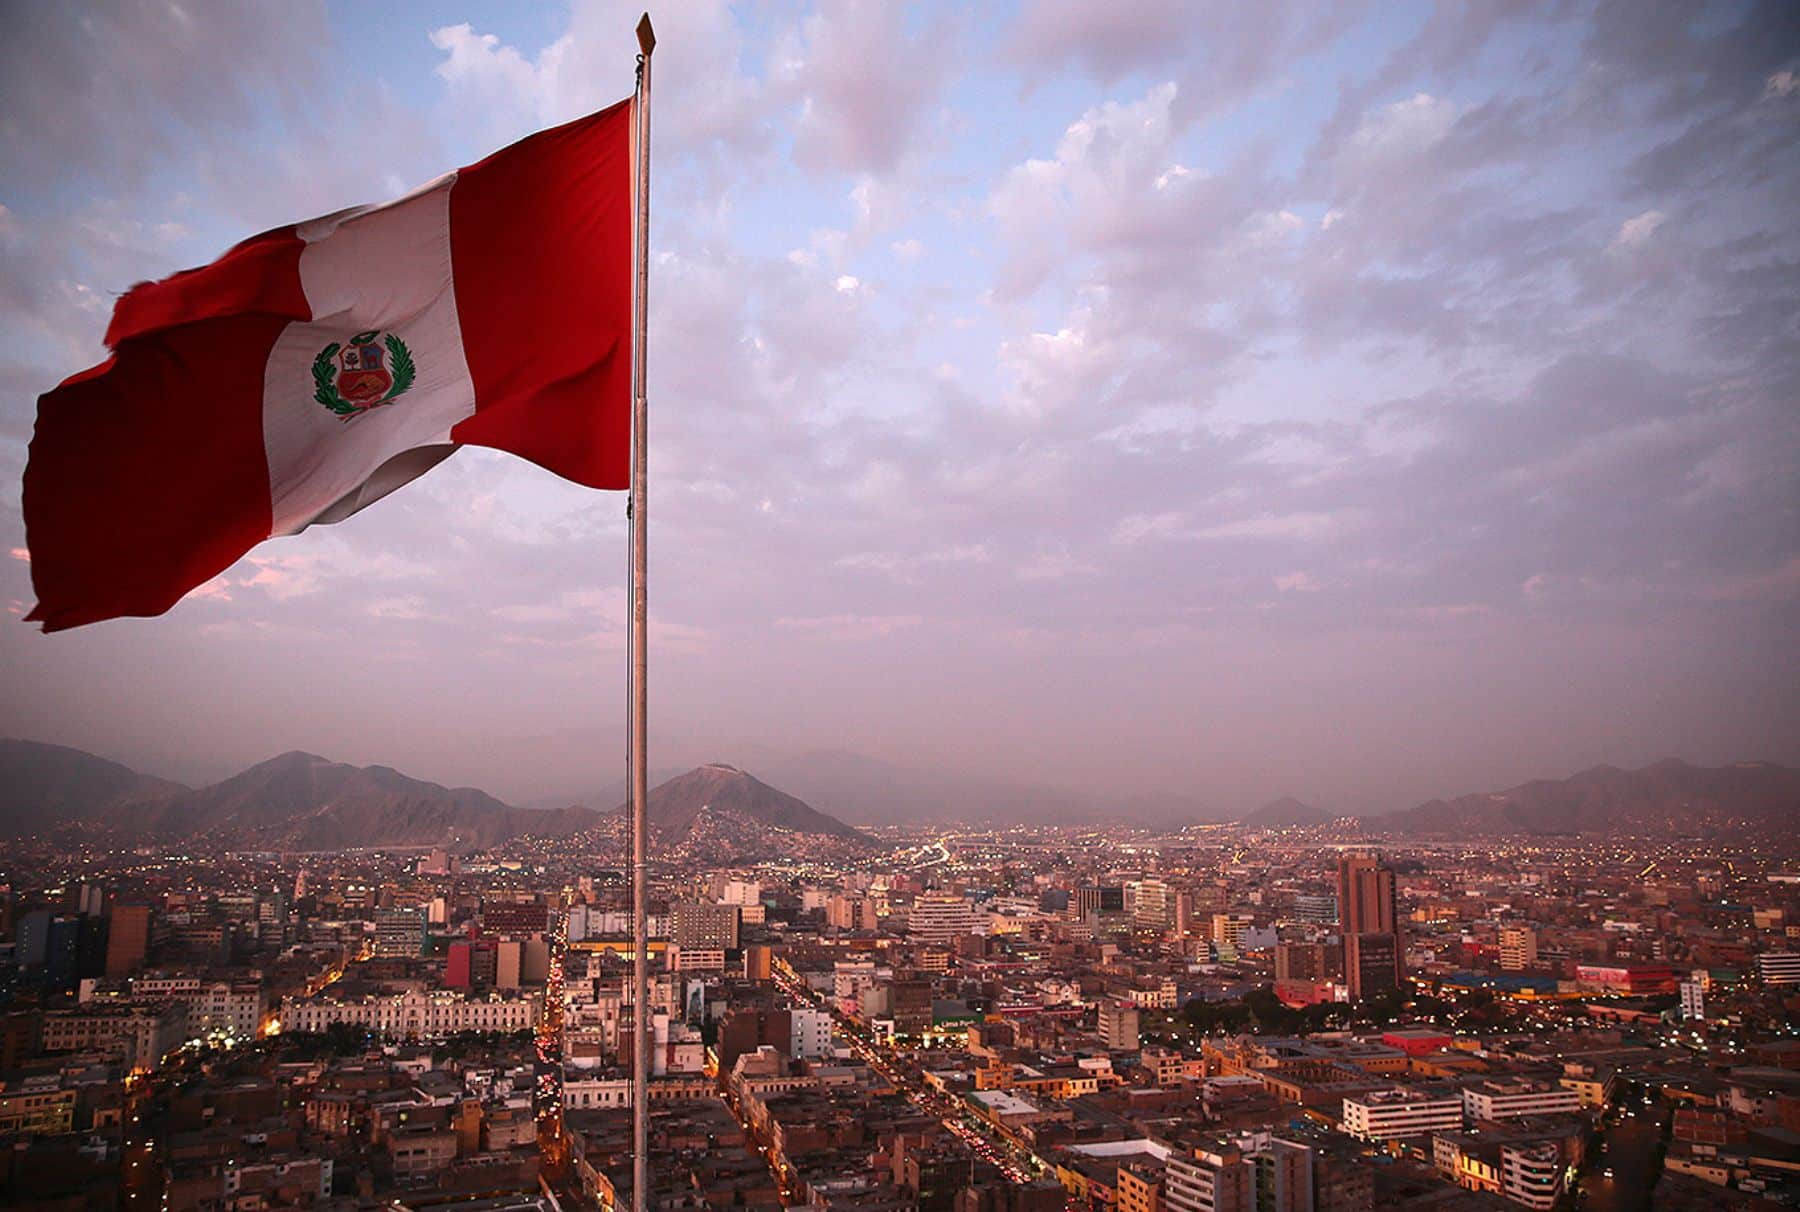 Peru's growth through structural reforms